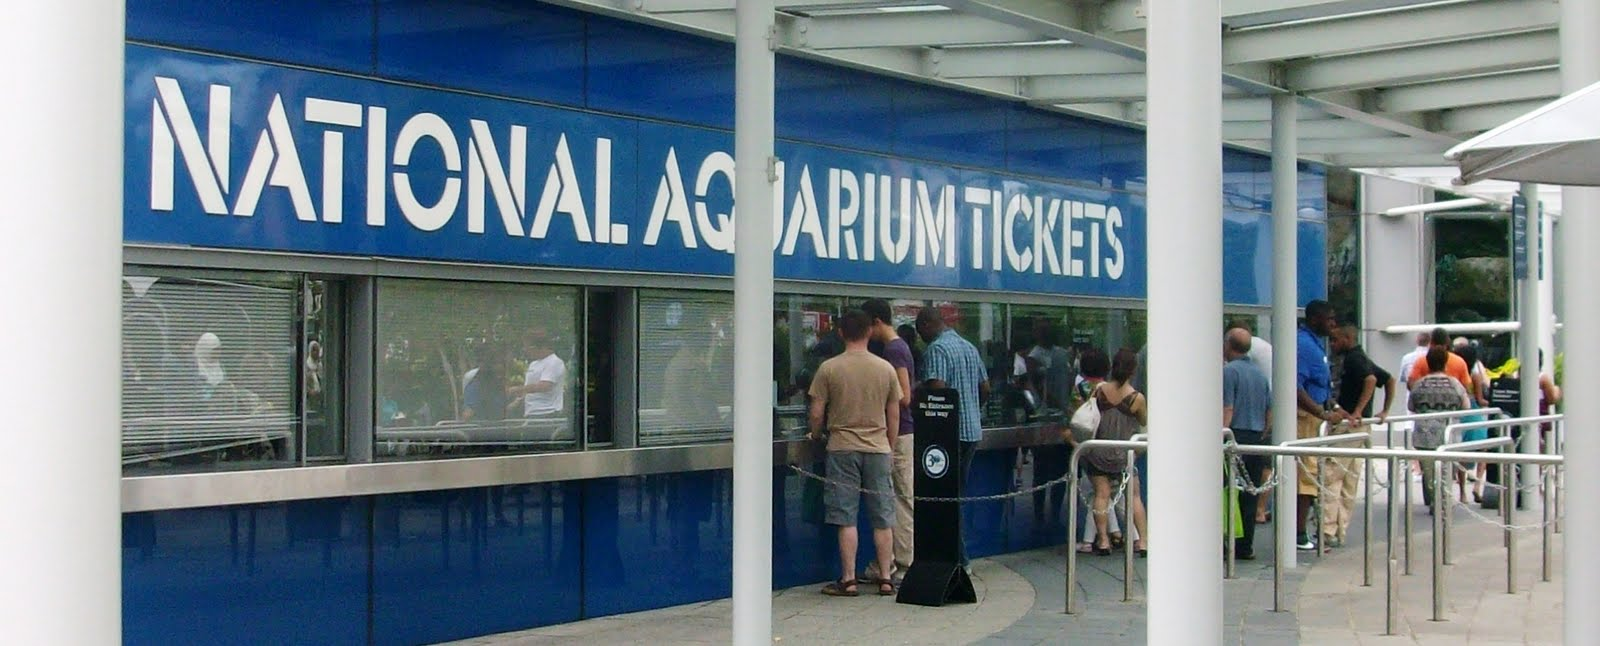 National aquarium discount coupons